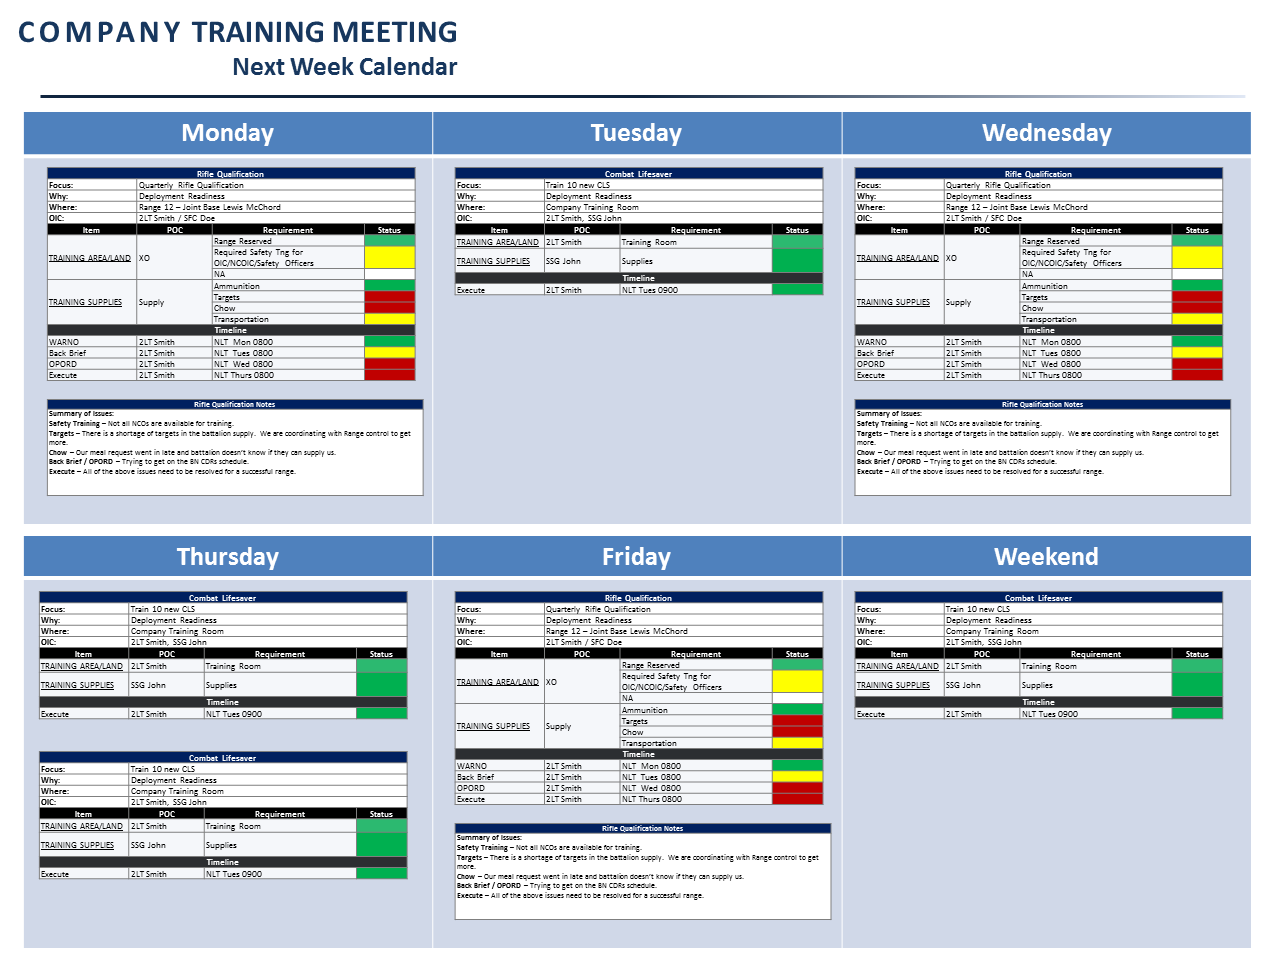 A Company Training Meeting Template | modernpresenter